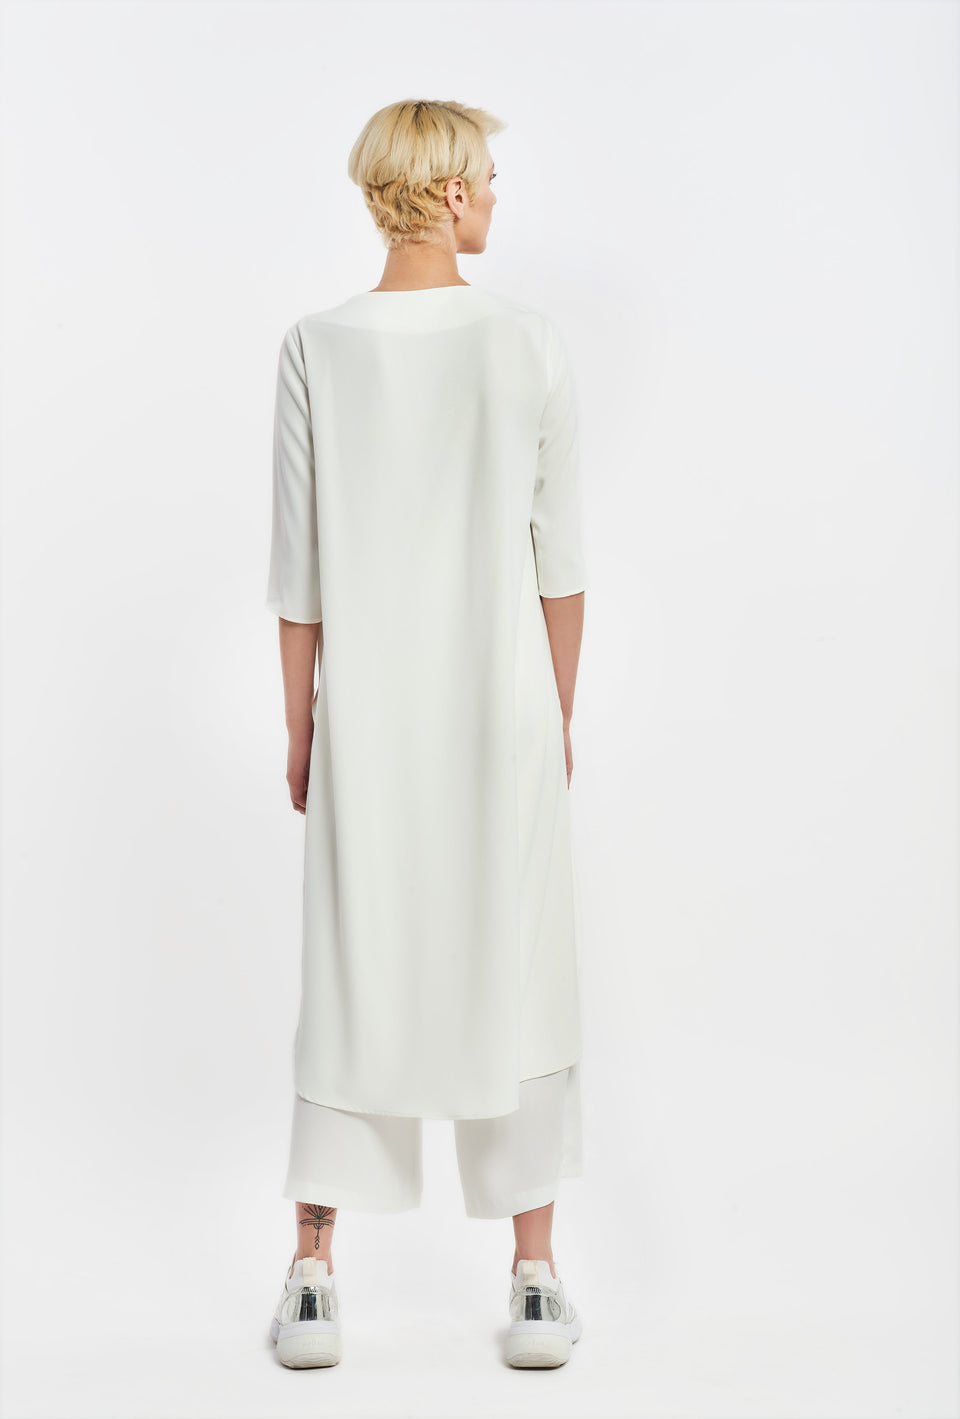 TUNIK TOP WITH 3/4 SLEEVE WHITE